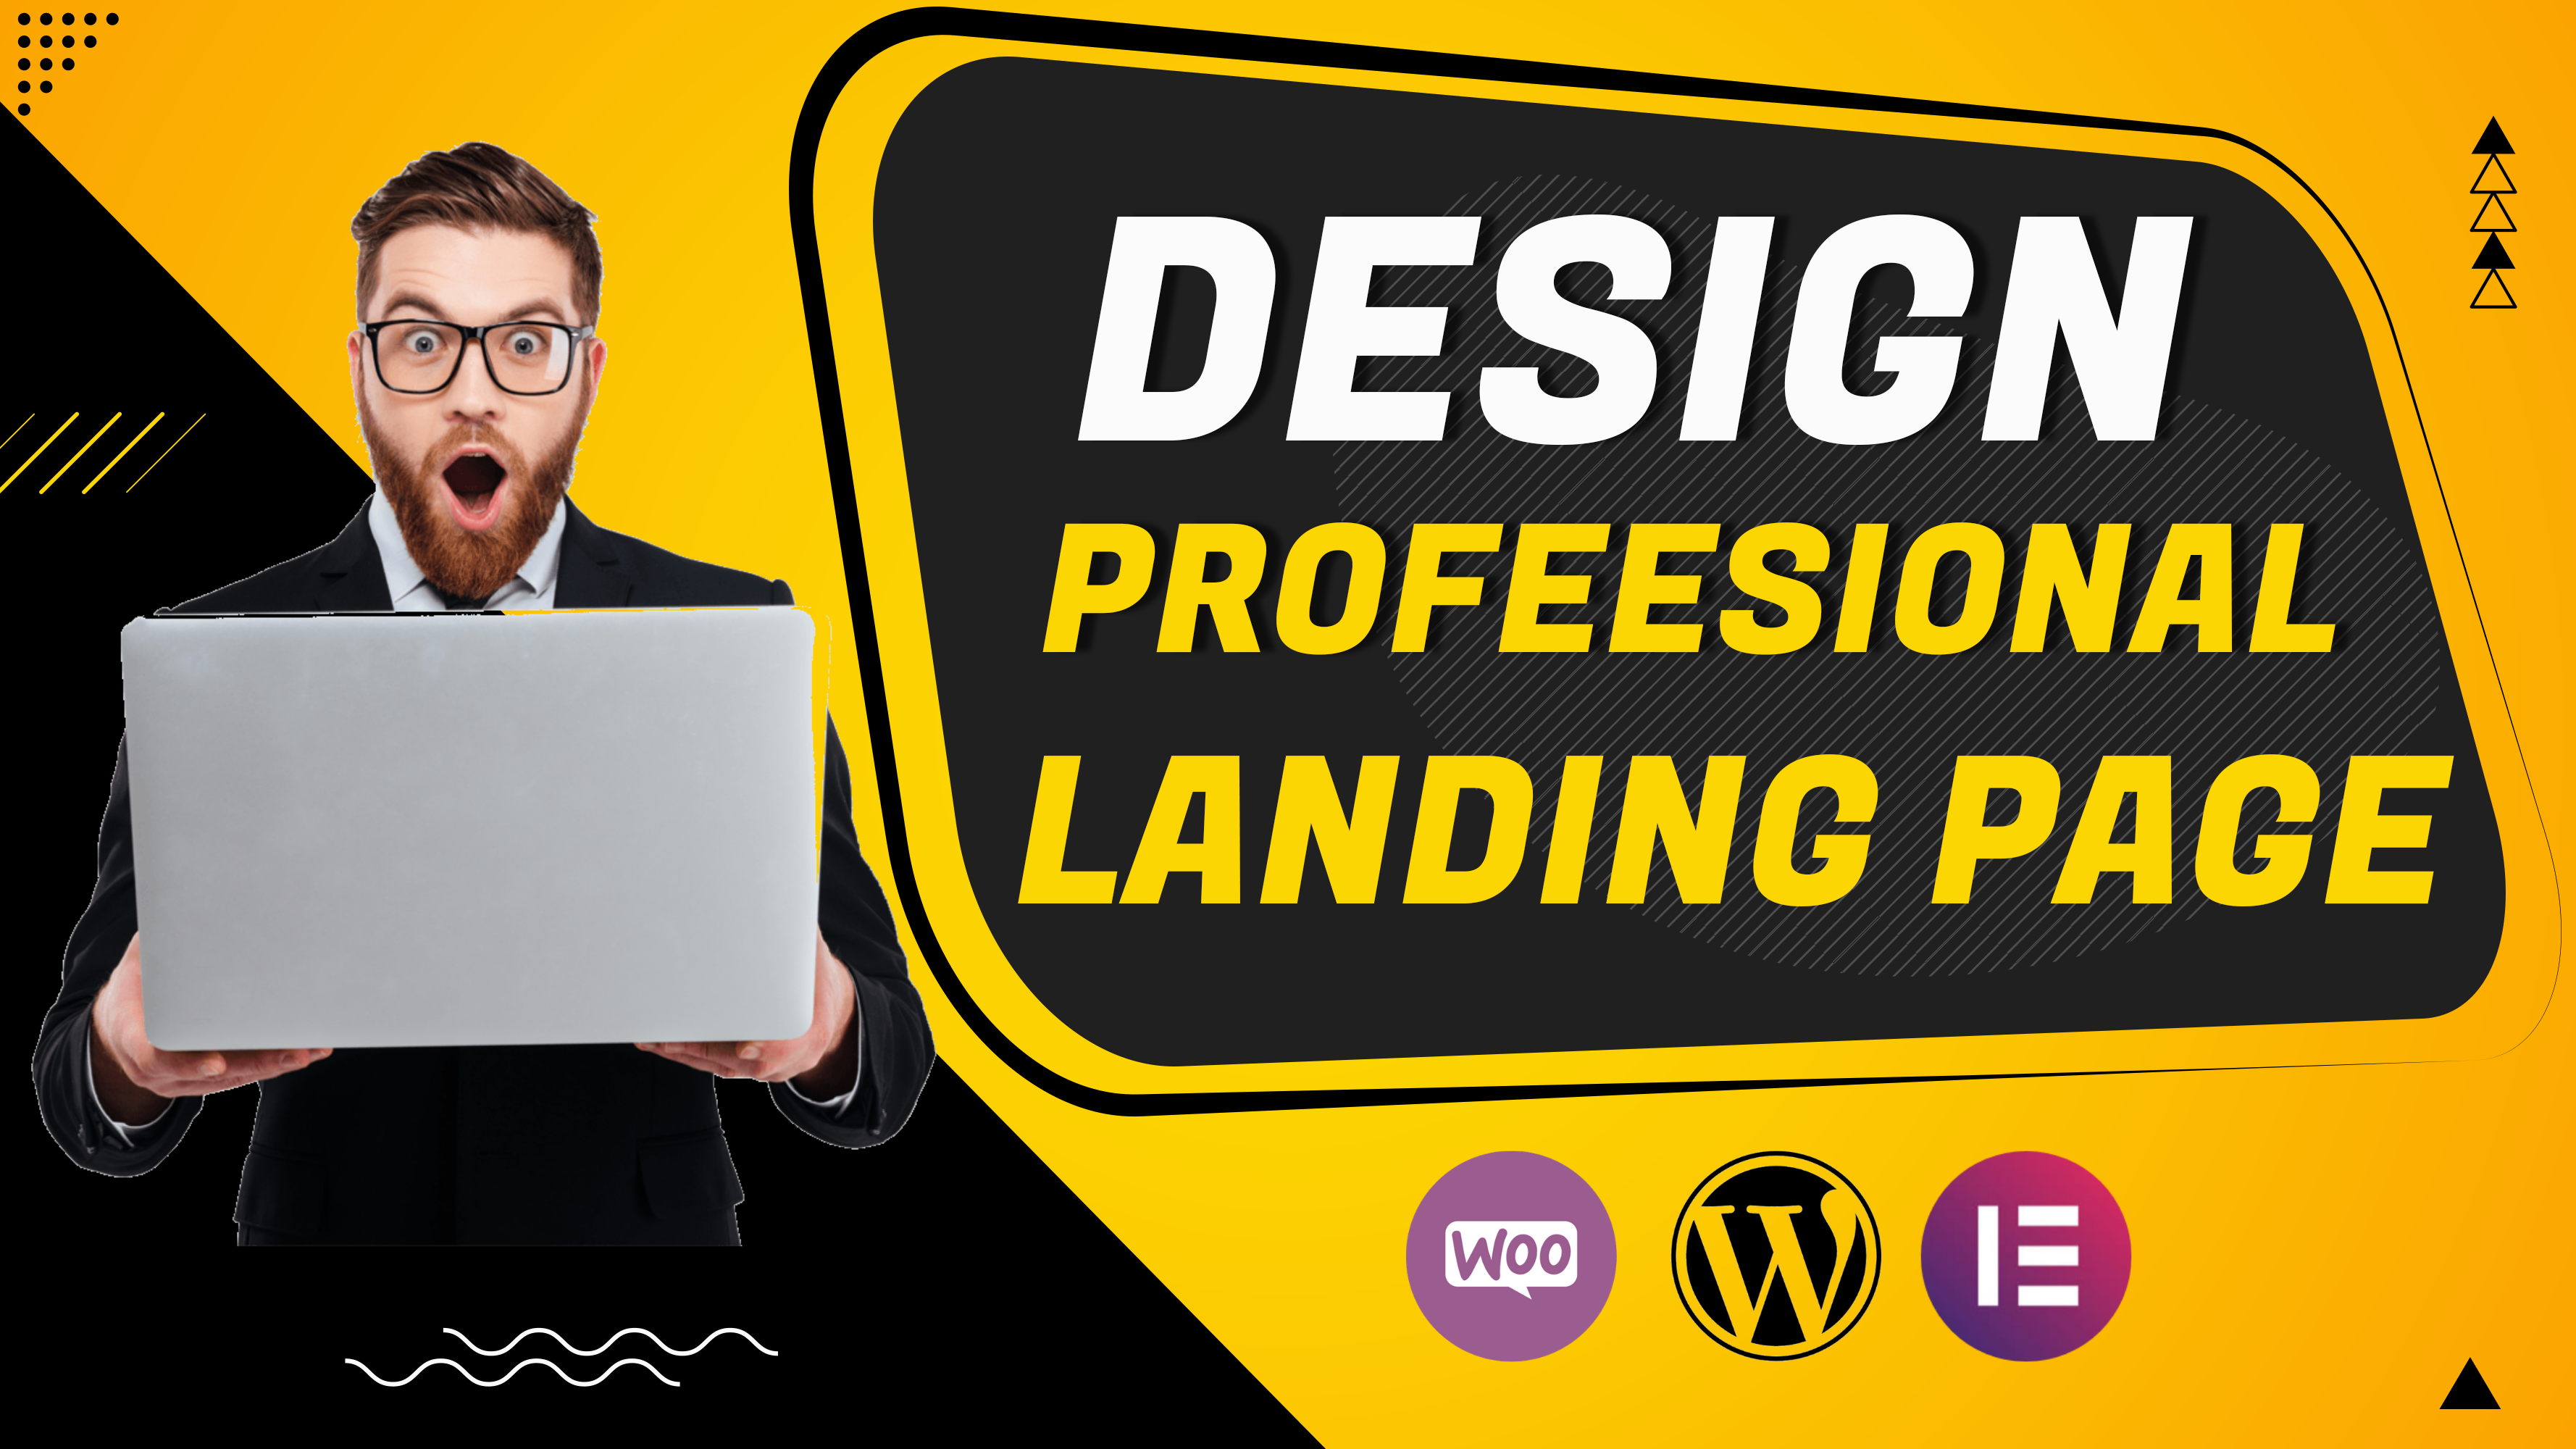 I will design wordpress landing page or squeeze page by elementor pro,  wpbakery,  divi